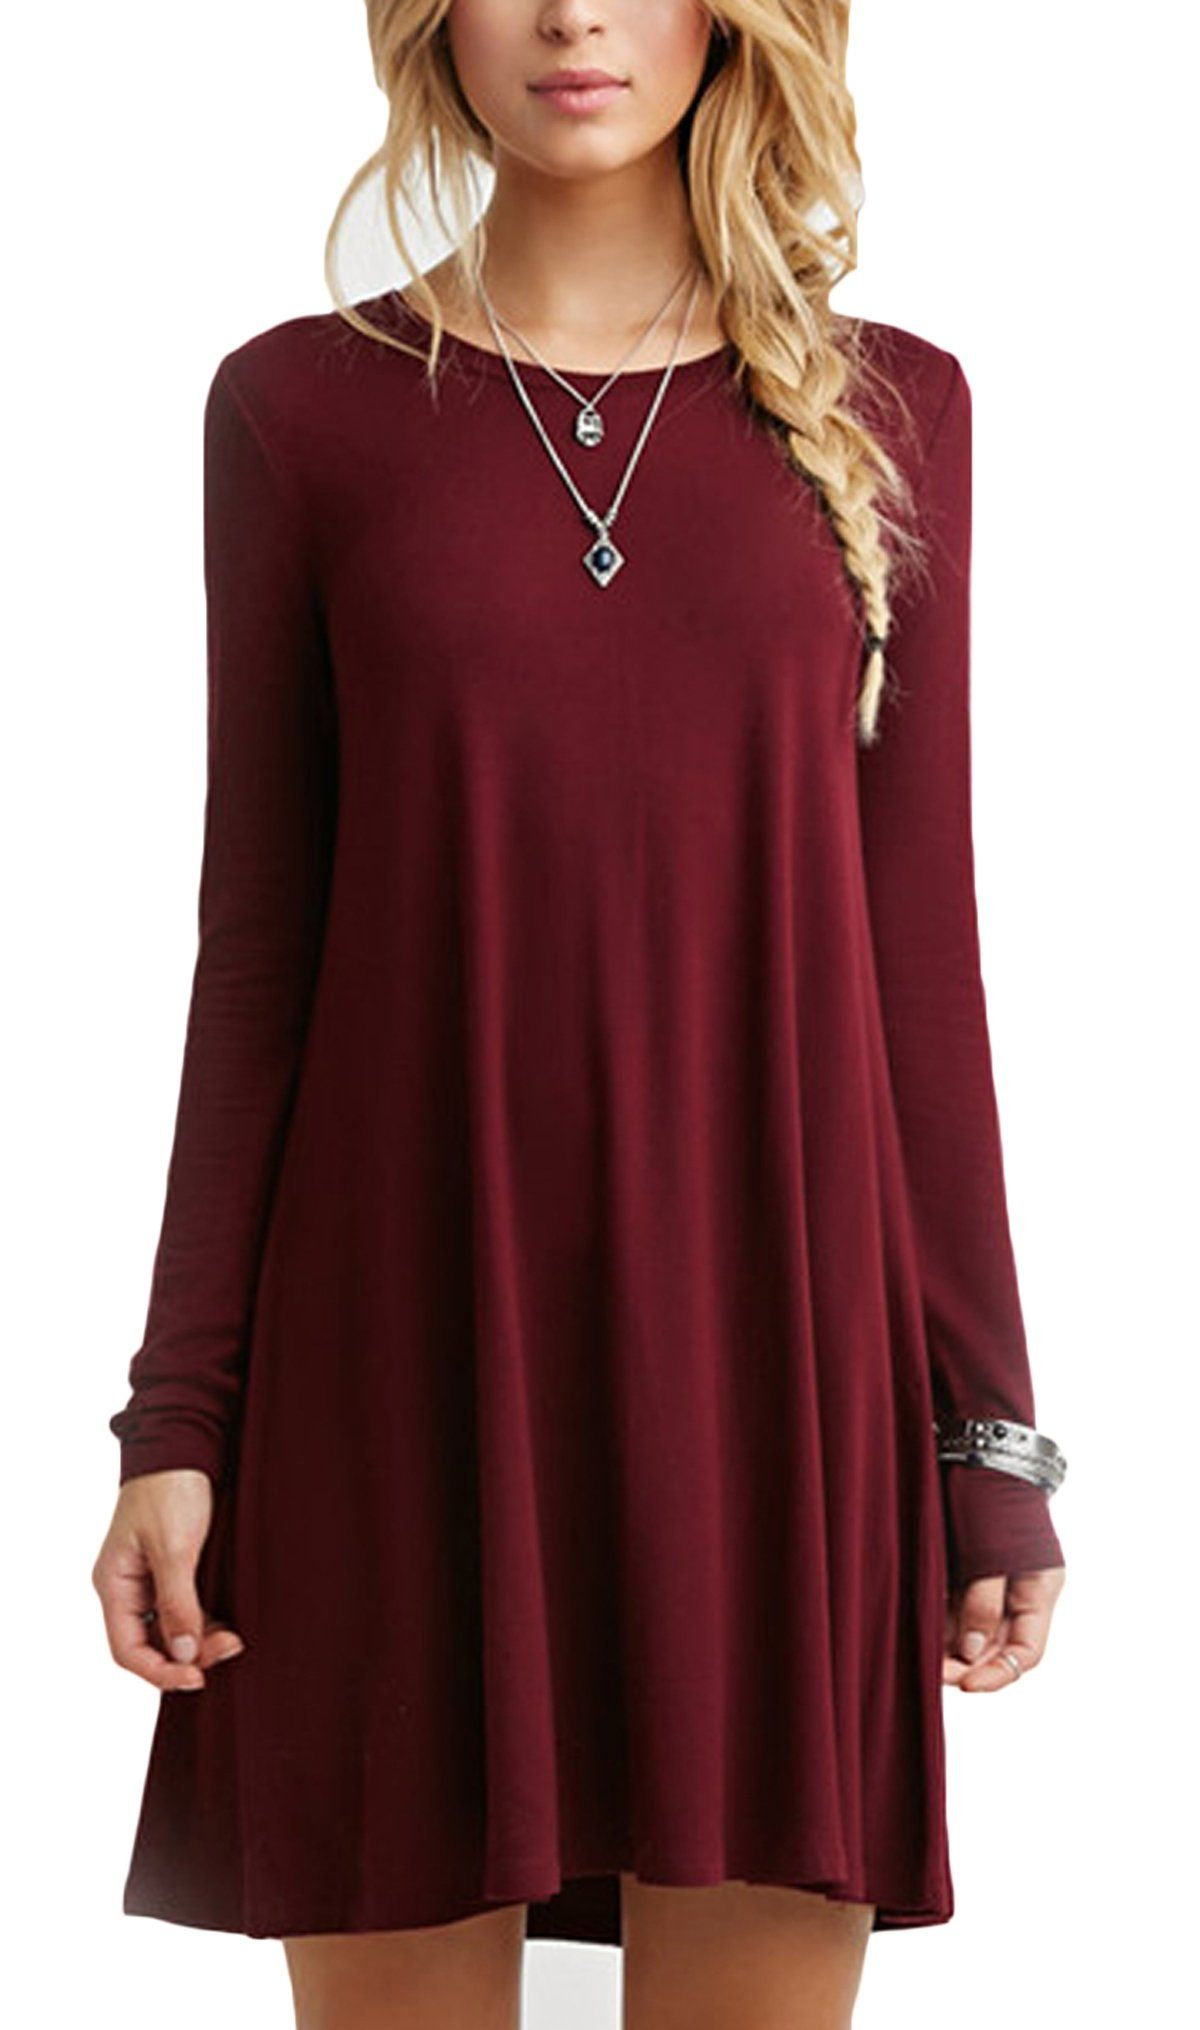 Shein womenus wine red oxblood long sleeve casual babydoll dress xs